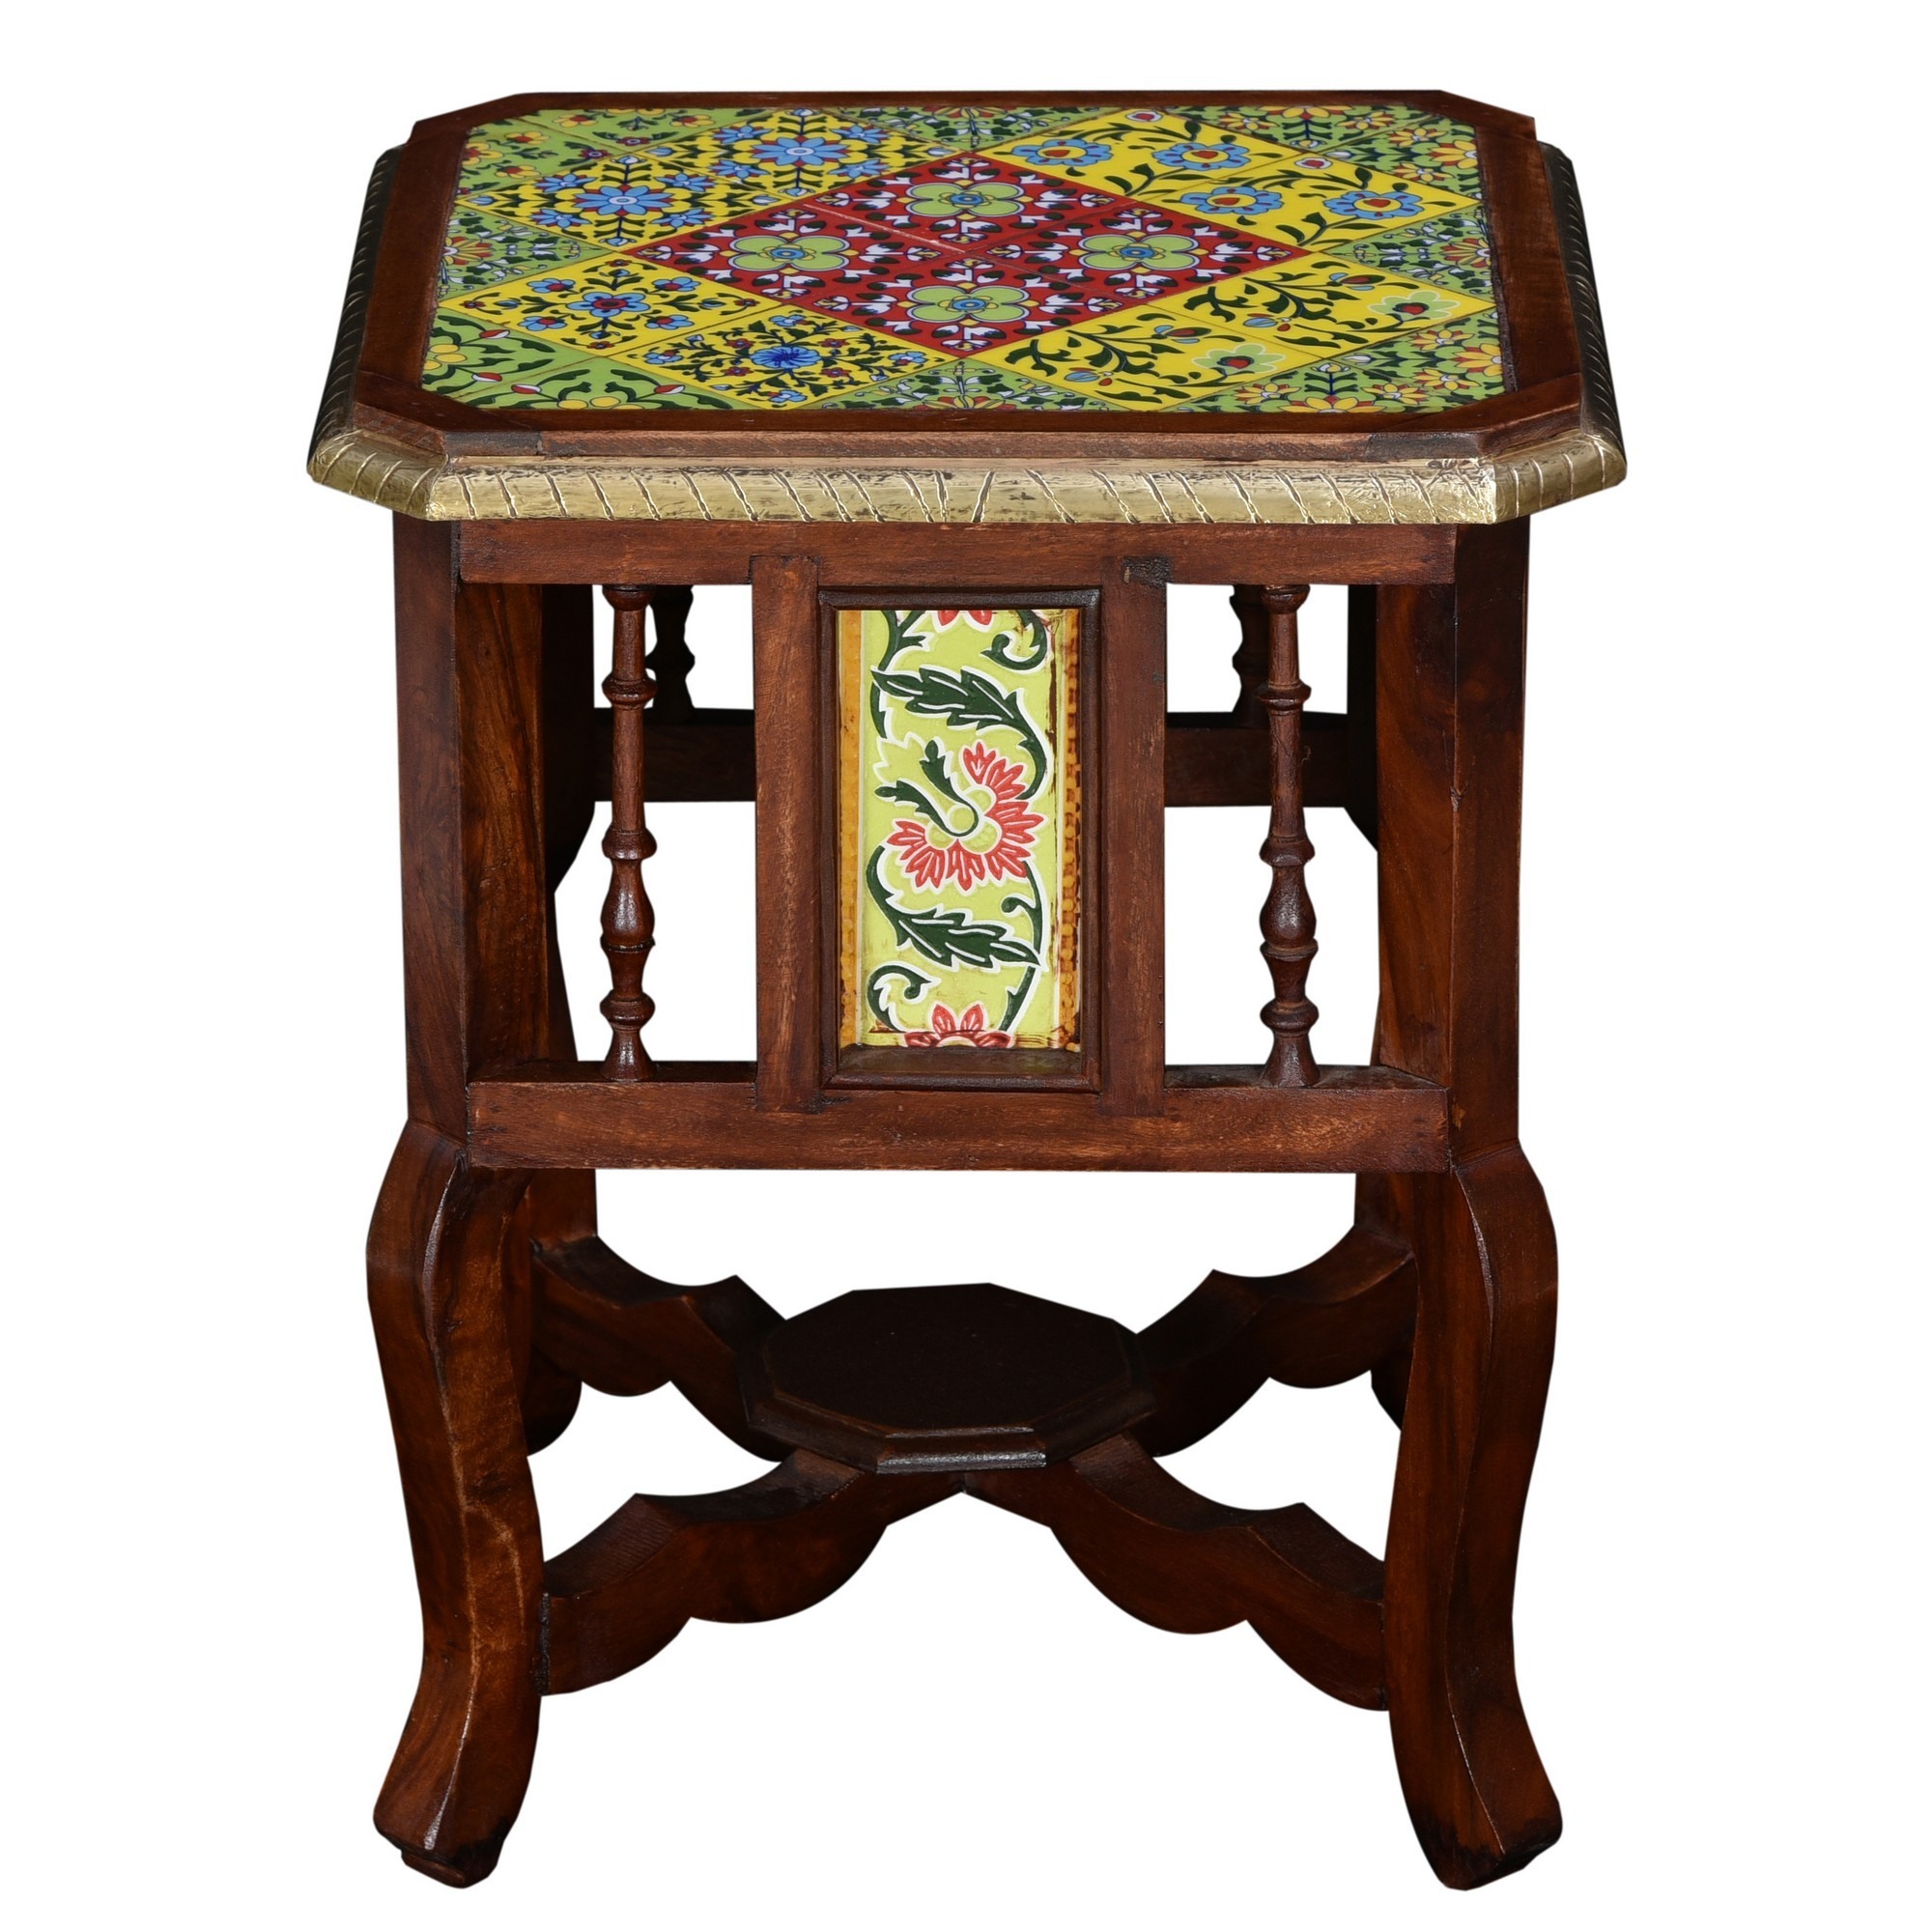 Nicum Moroccan Tile Inlay Timber Side Table